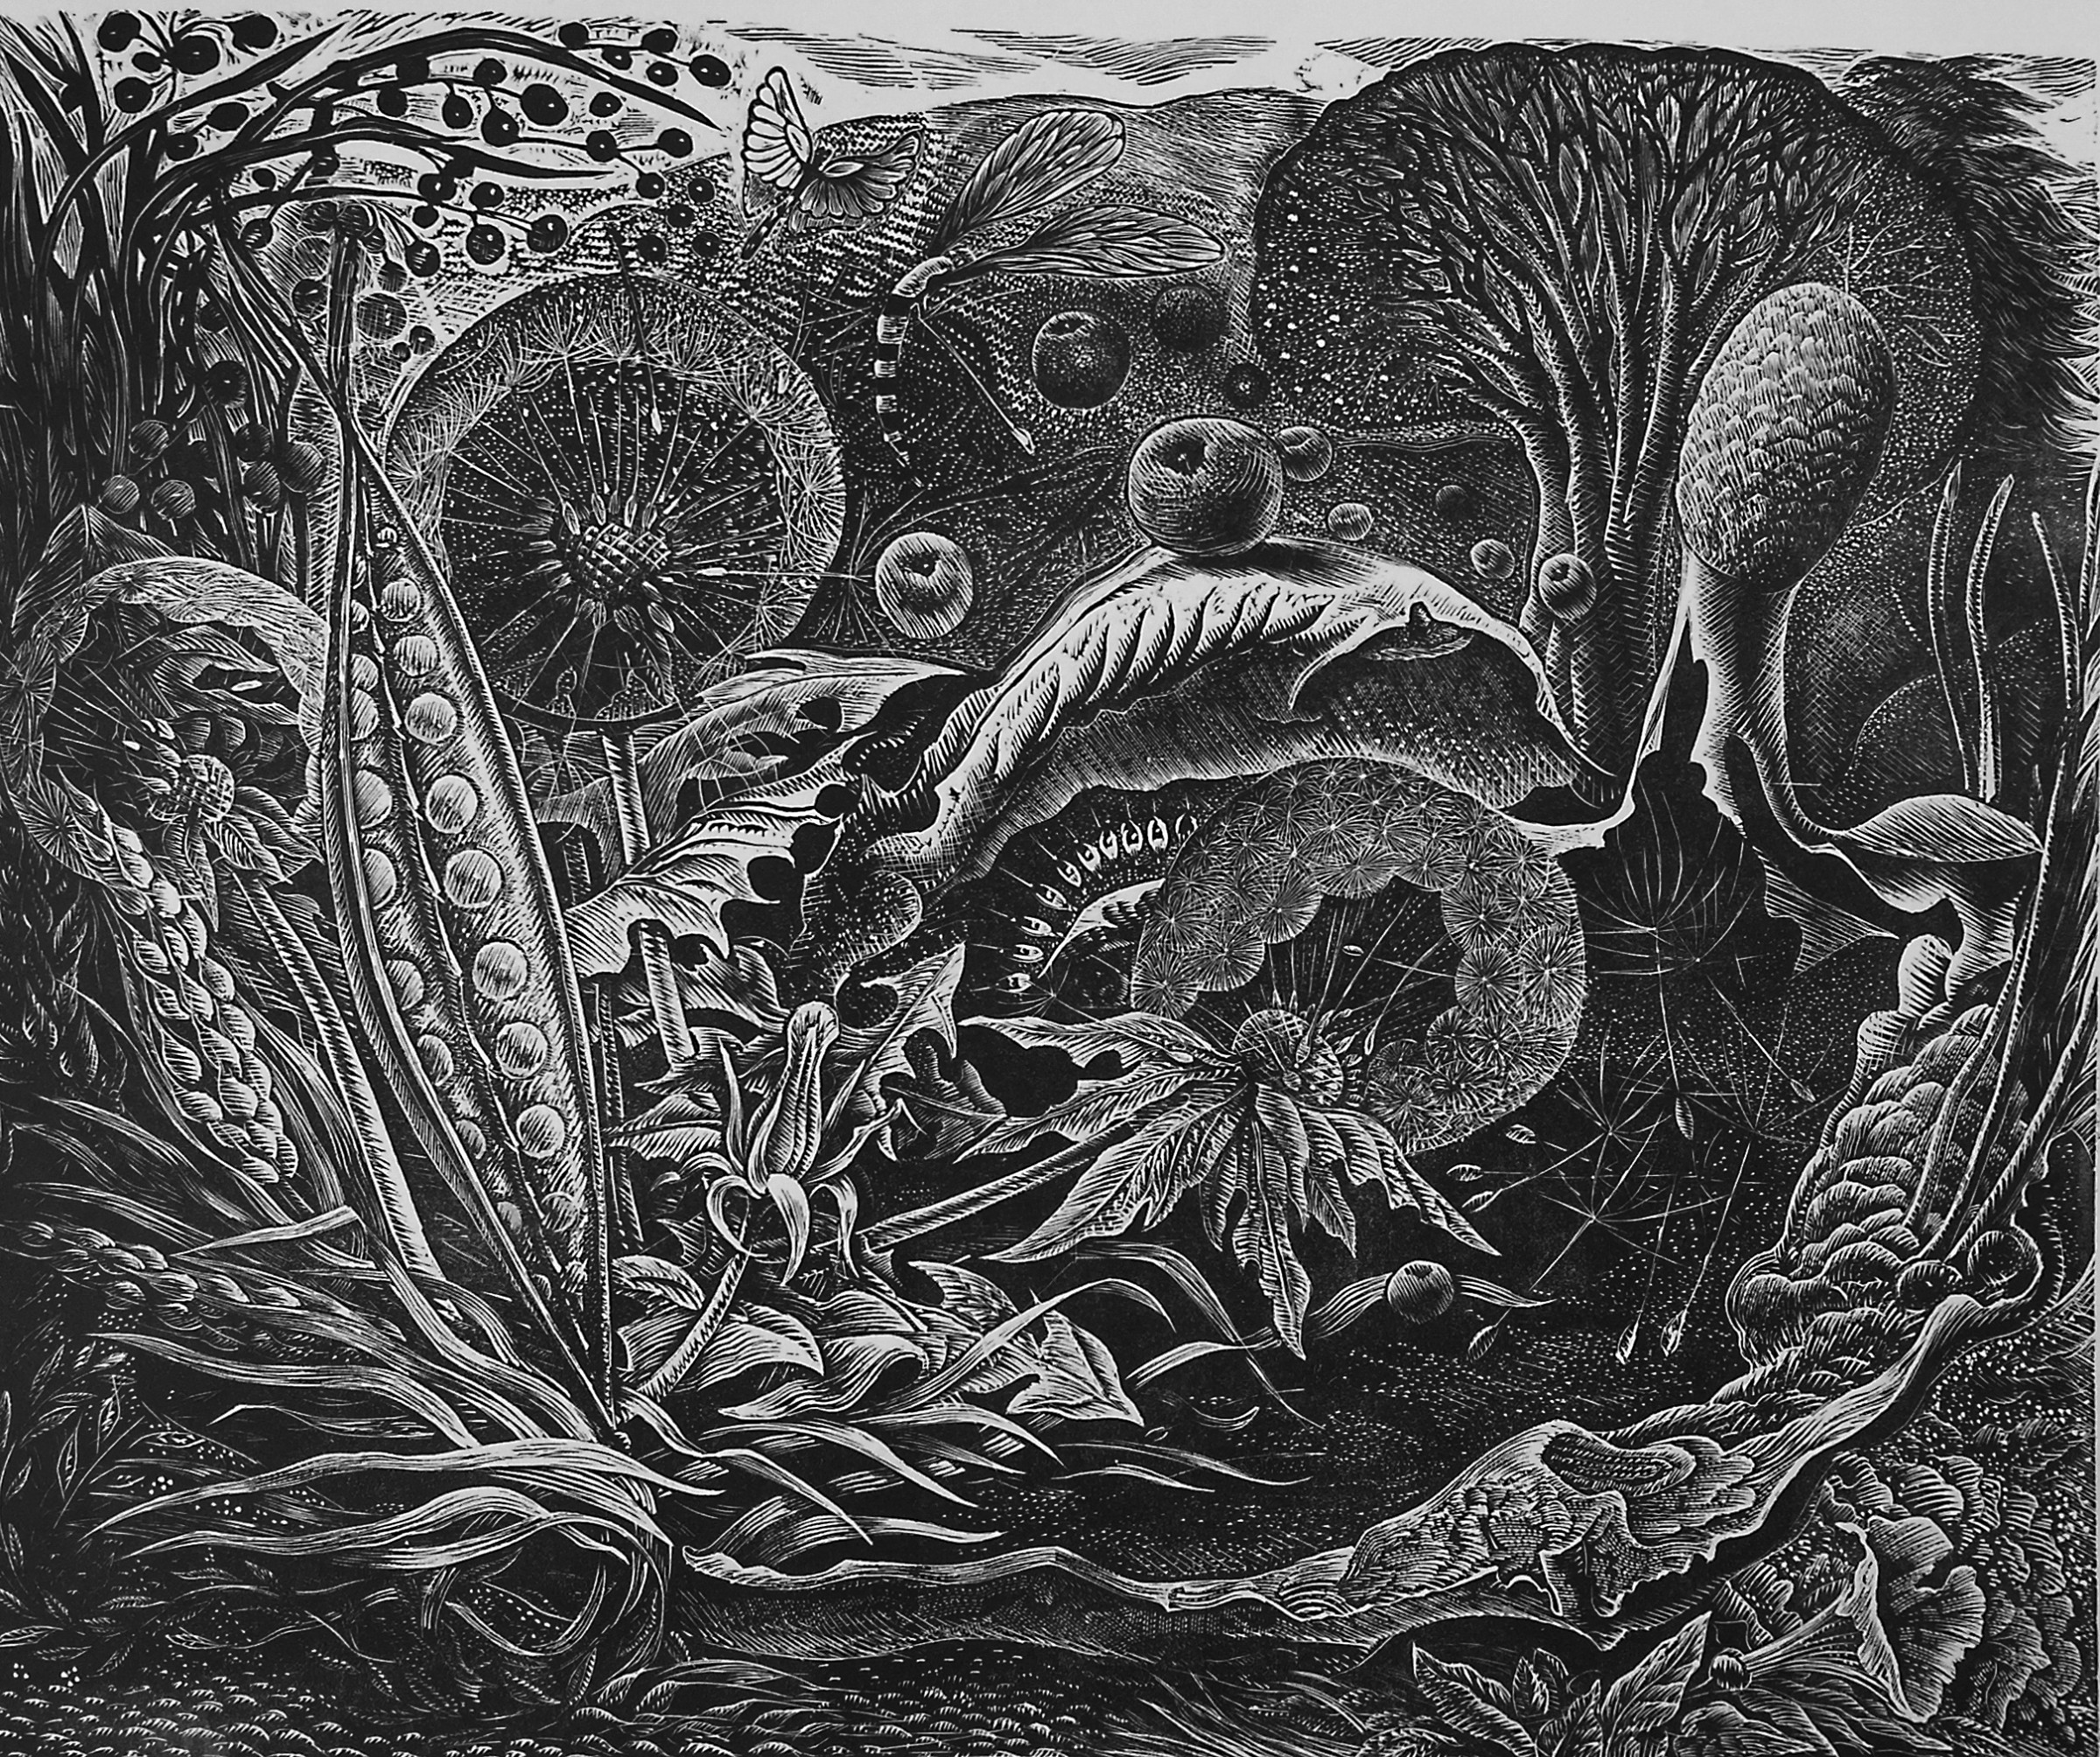 "<span class=""link fancybox-details-link""><a href=""/exhibitions/18/works/image_standalone1060/"">View Detail Page</a></span><p>George Tute RE</p><p>Large Dandelion Field</p><p>wood engraving</p><p>44 x 50cm</p><p>£1100 framed</p><p>£950 unframed</p>"